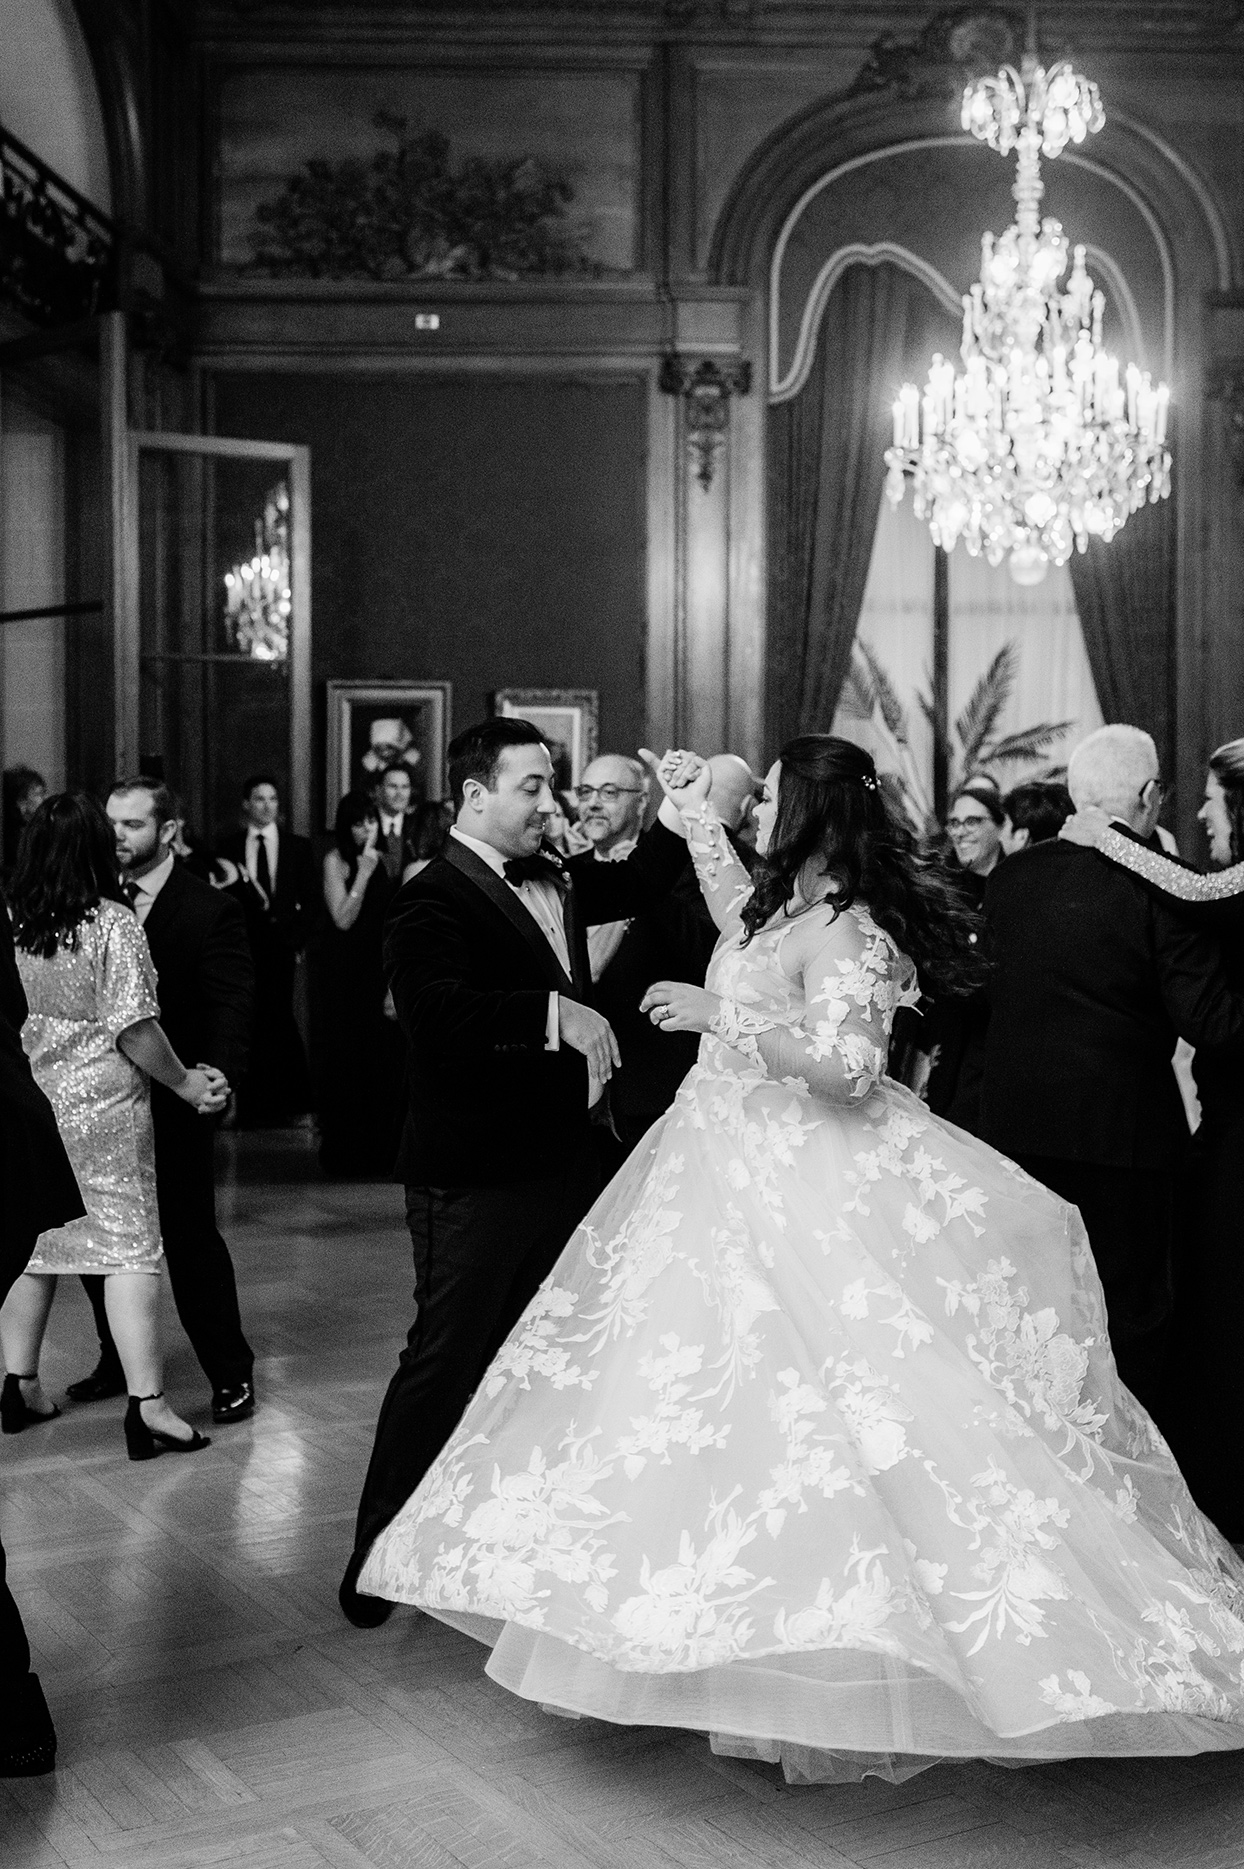 Bride and groom during reception dance